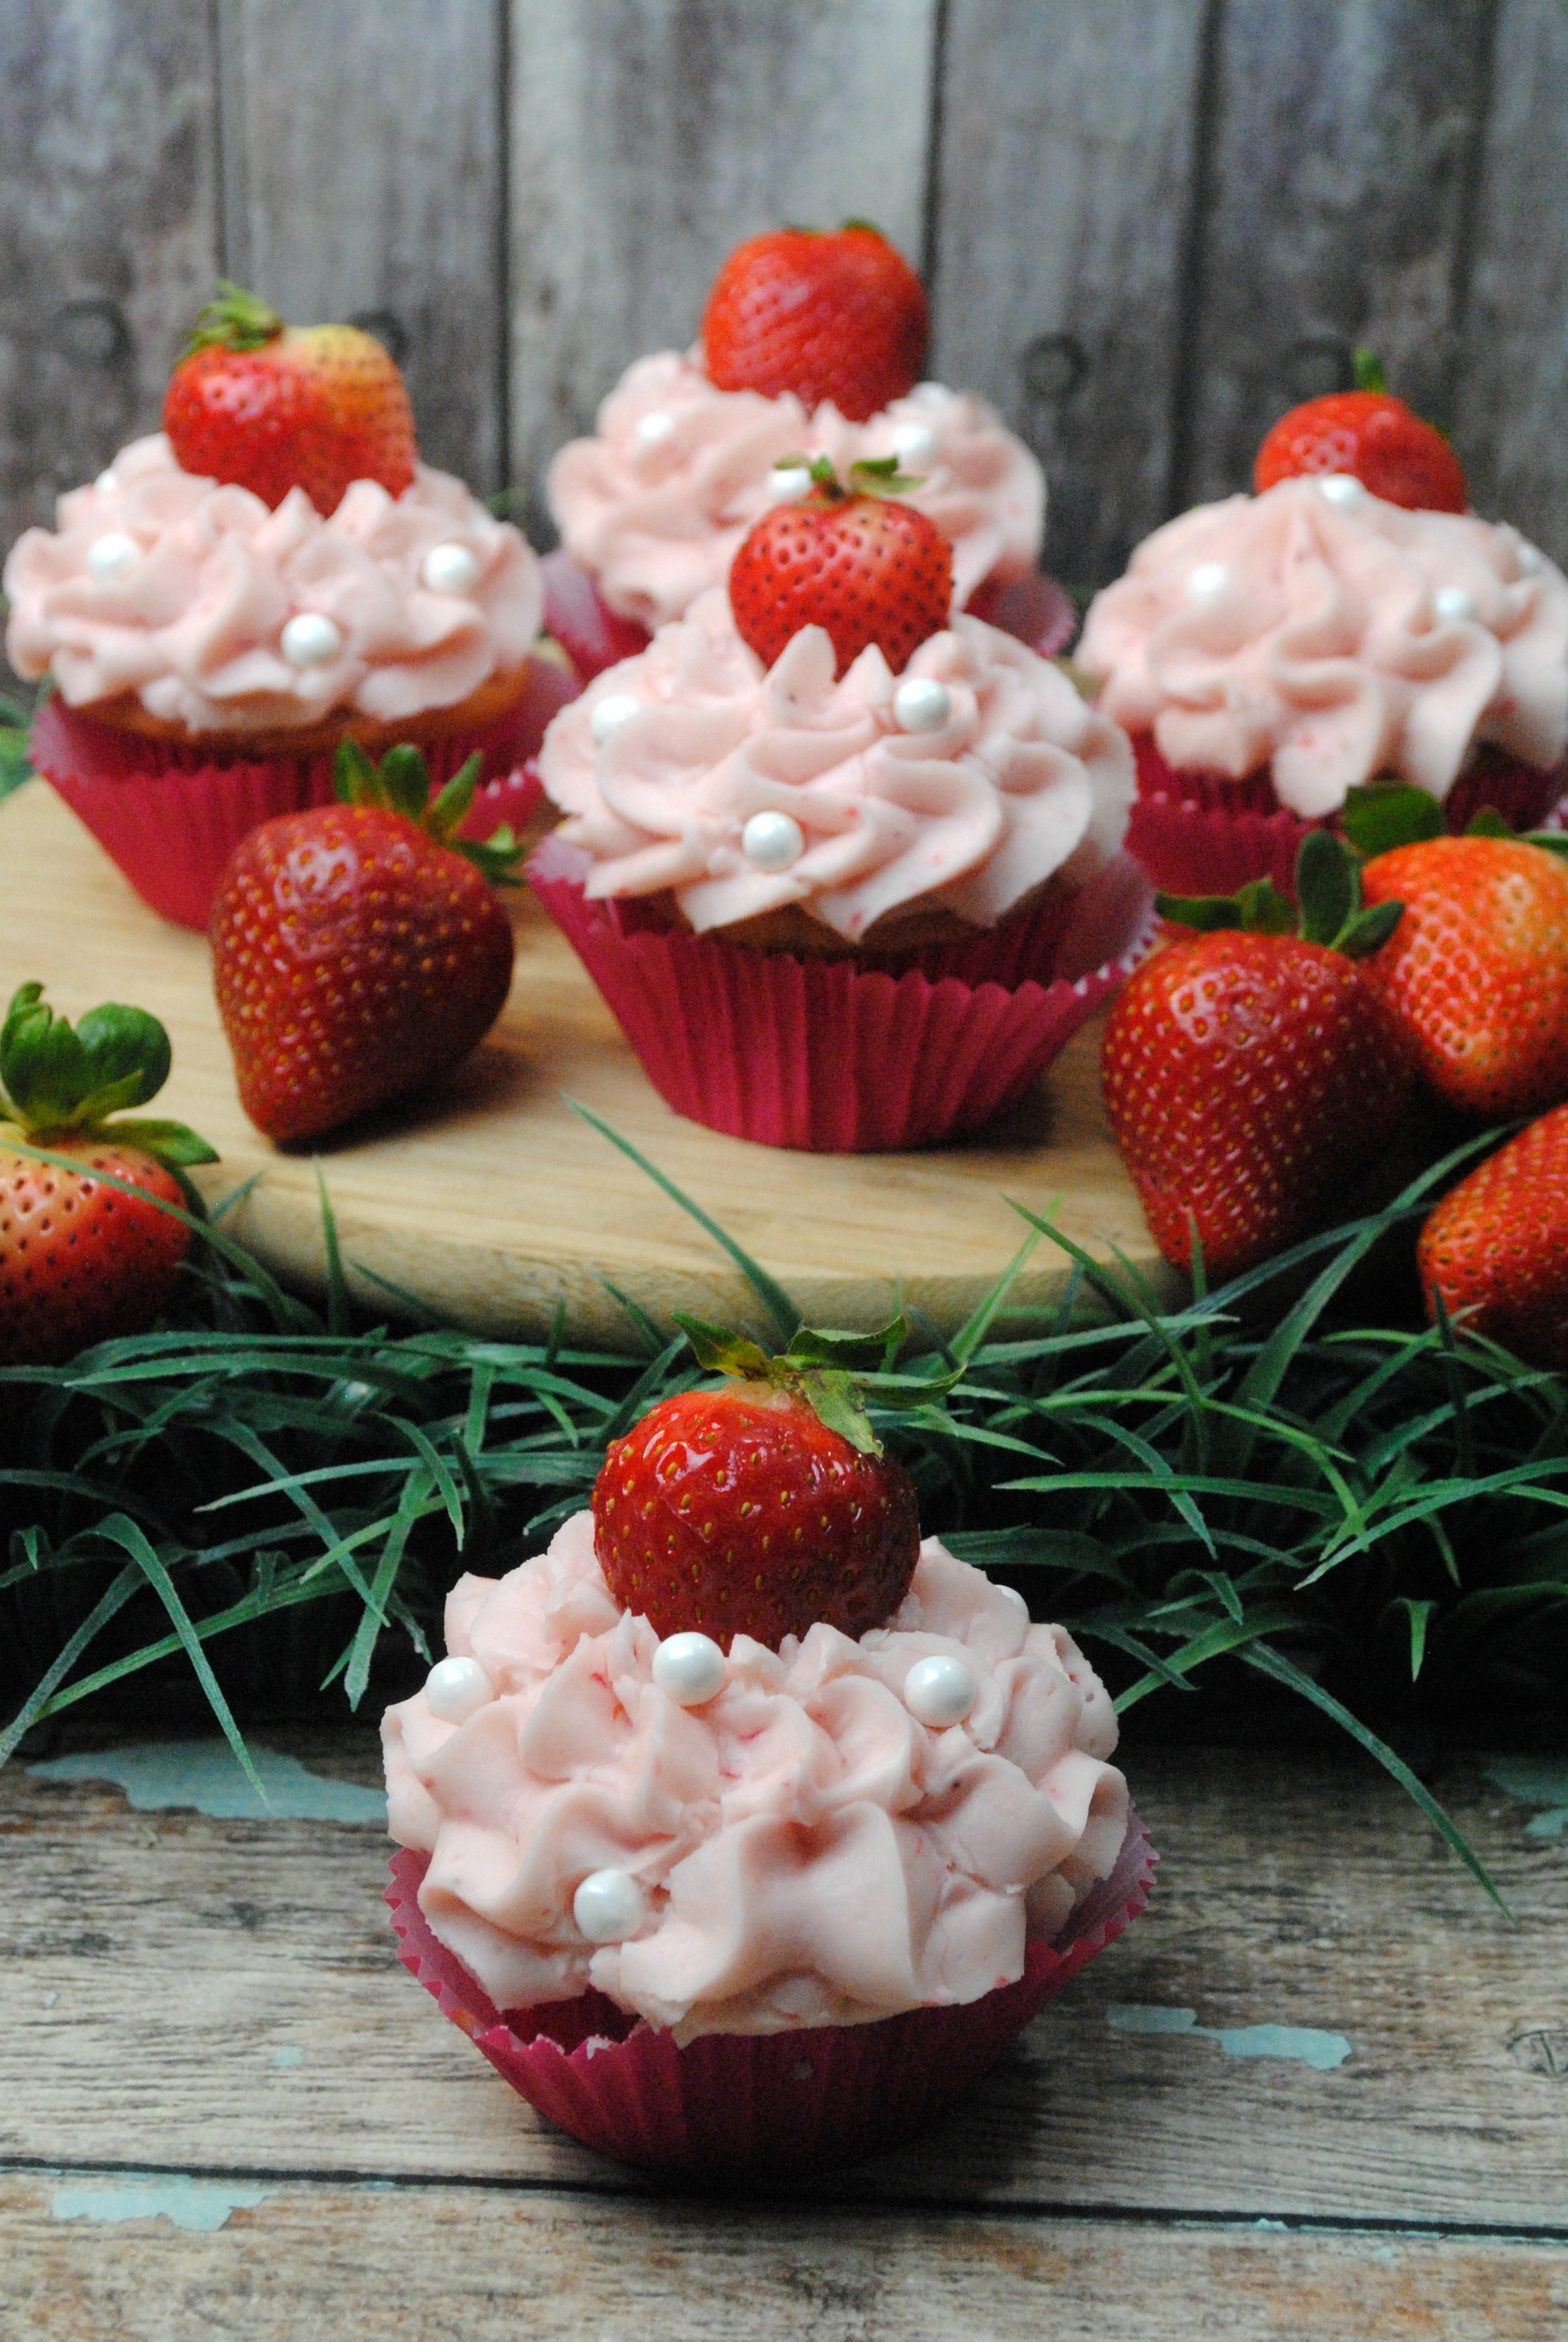 strawberry cupcakes on a wood board with grass